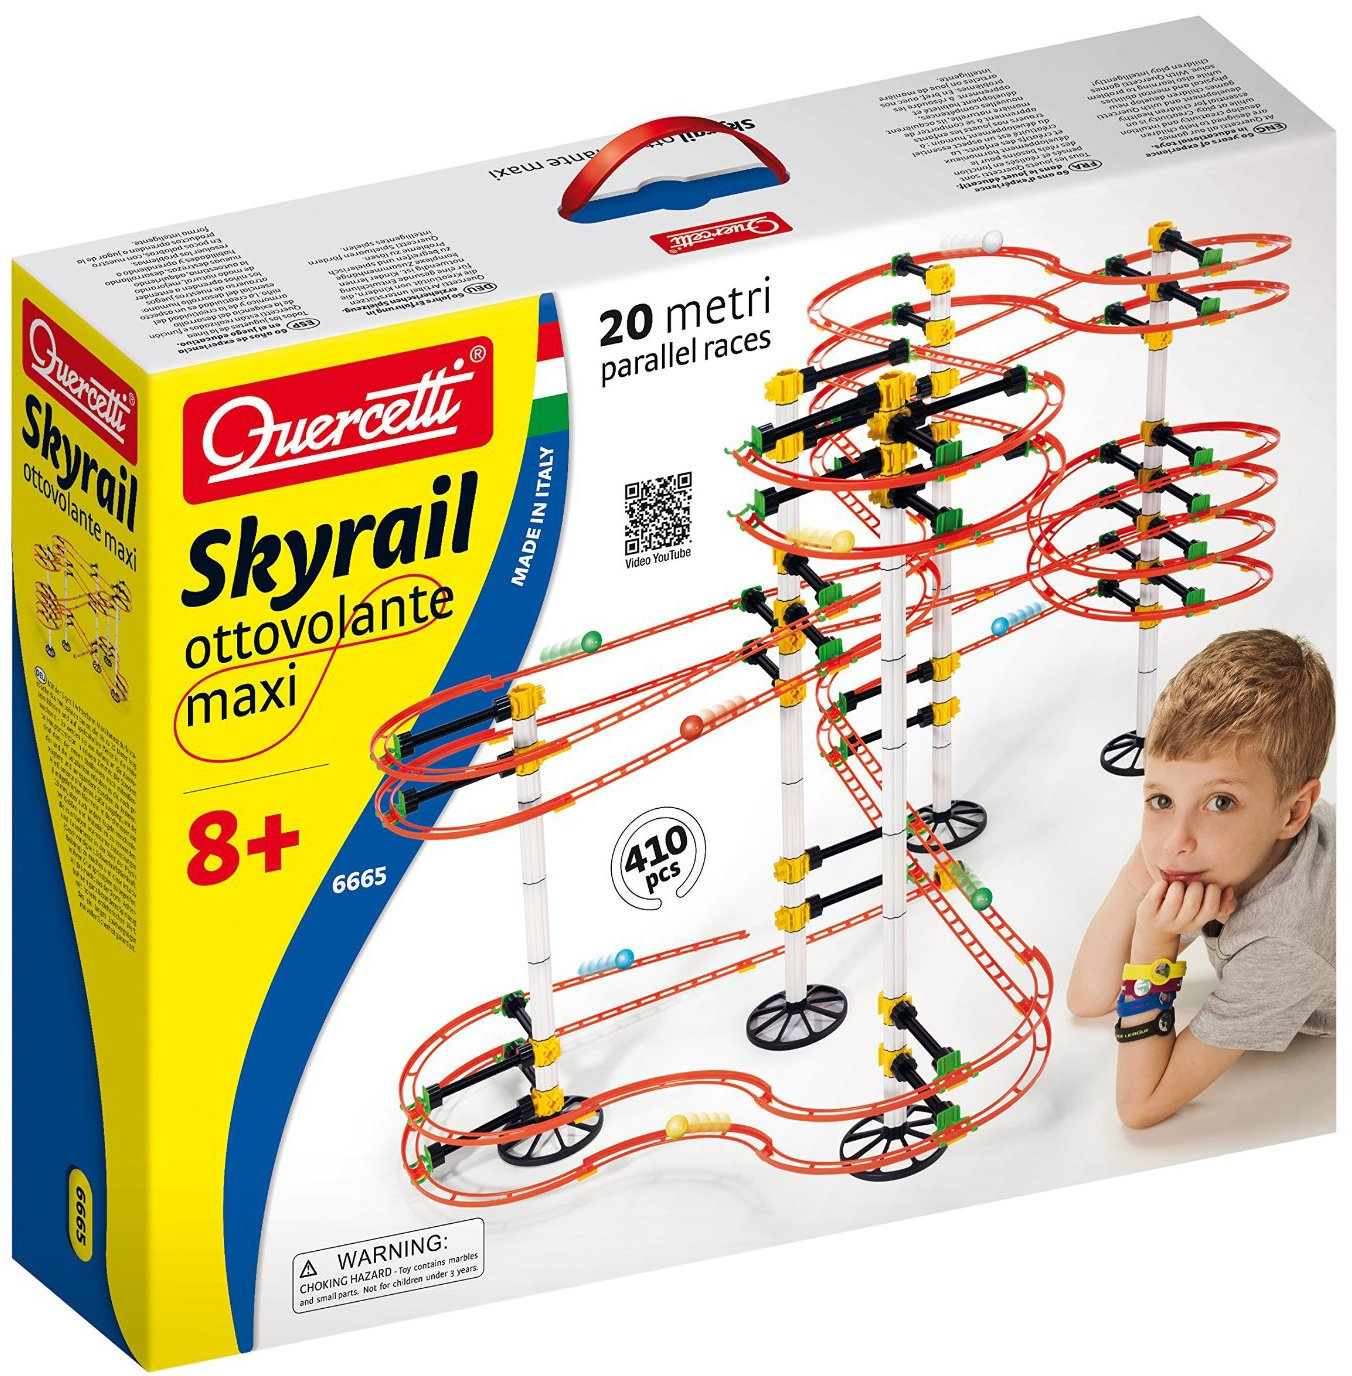 Quercetti skyrail ottovolante maxi for ages 8 and up skyrail-ottovolante-maxi